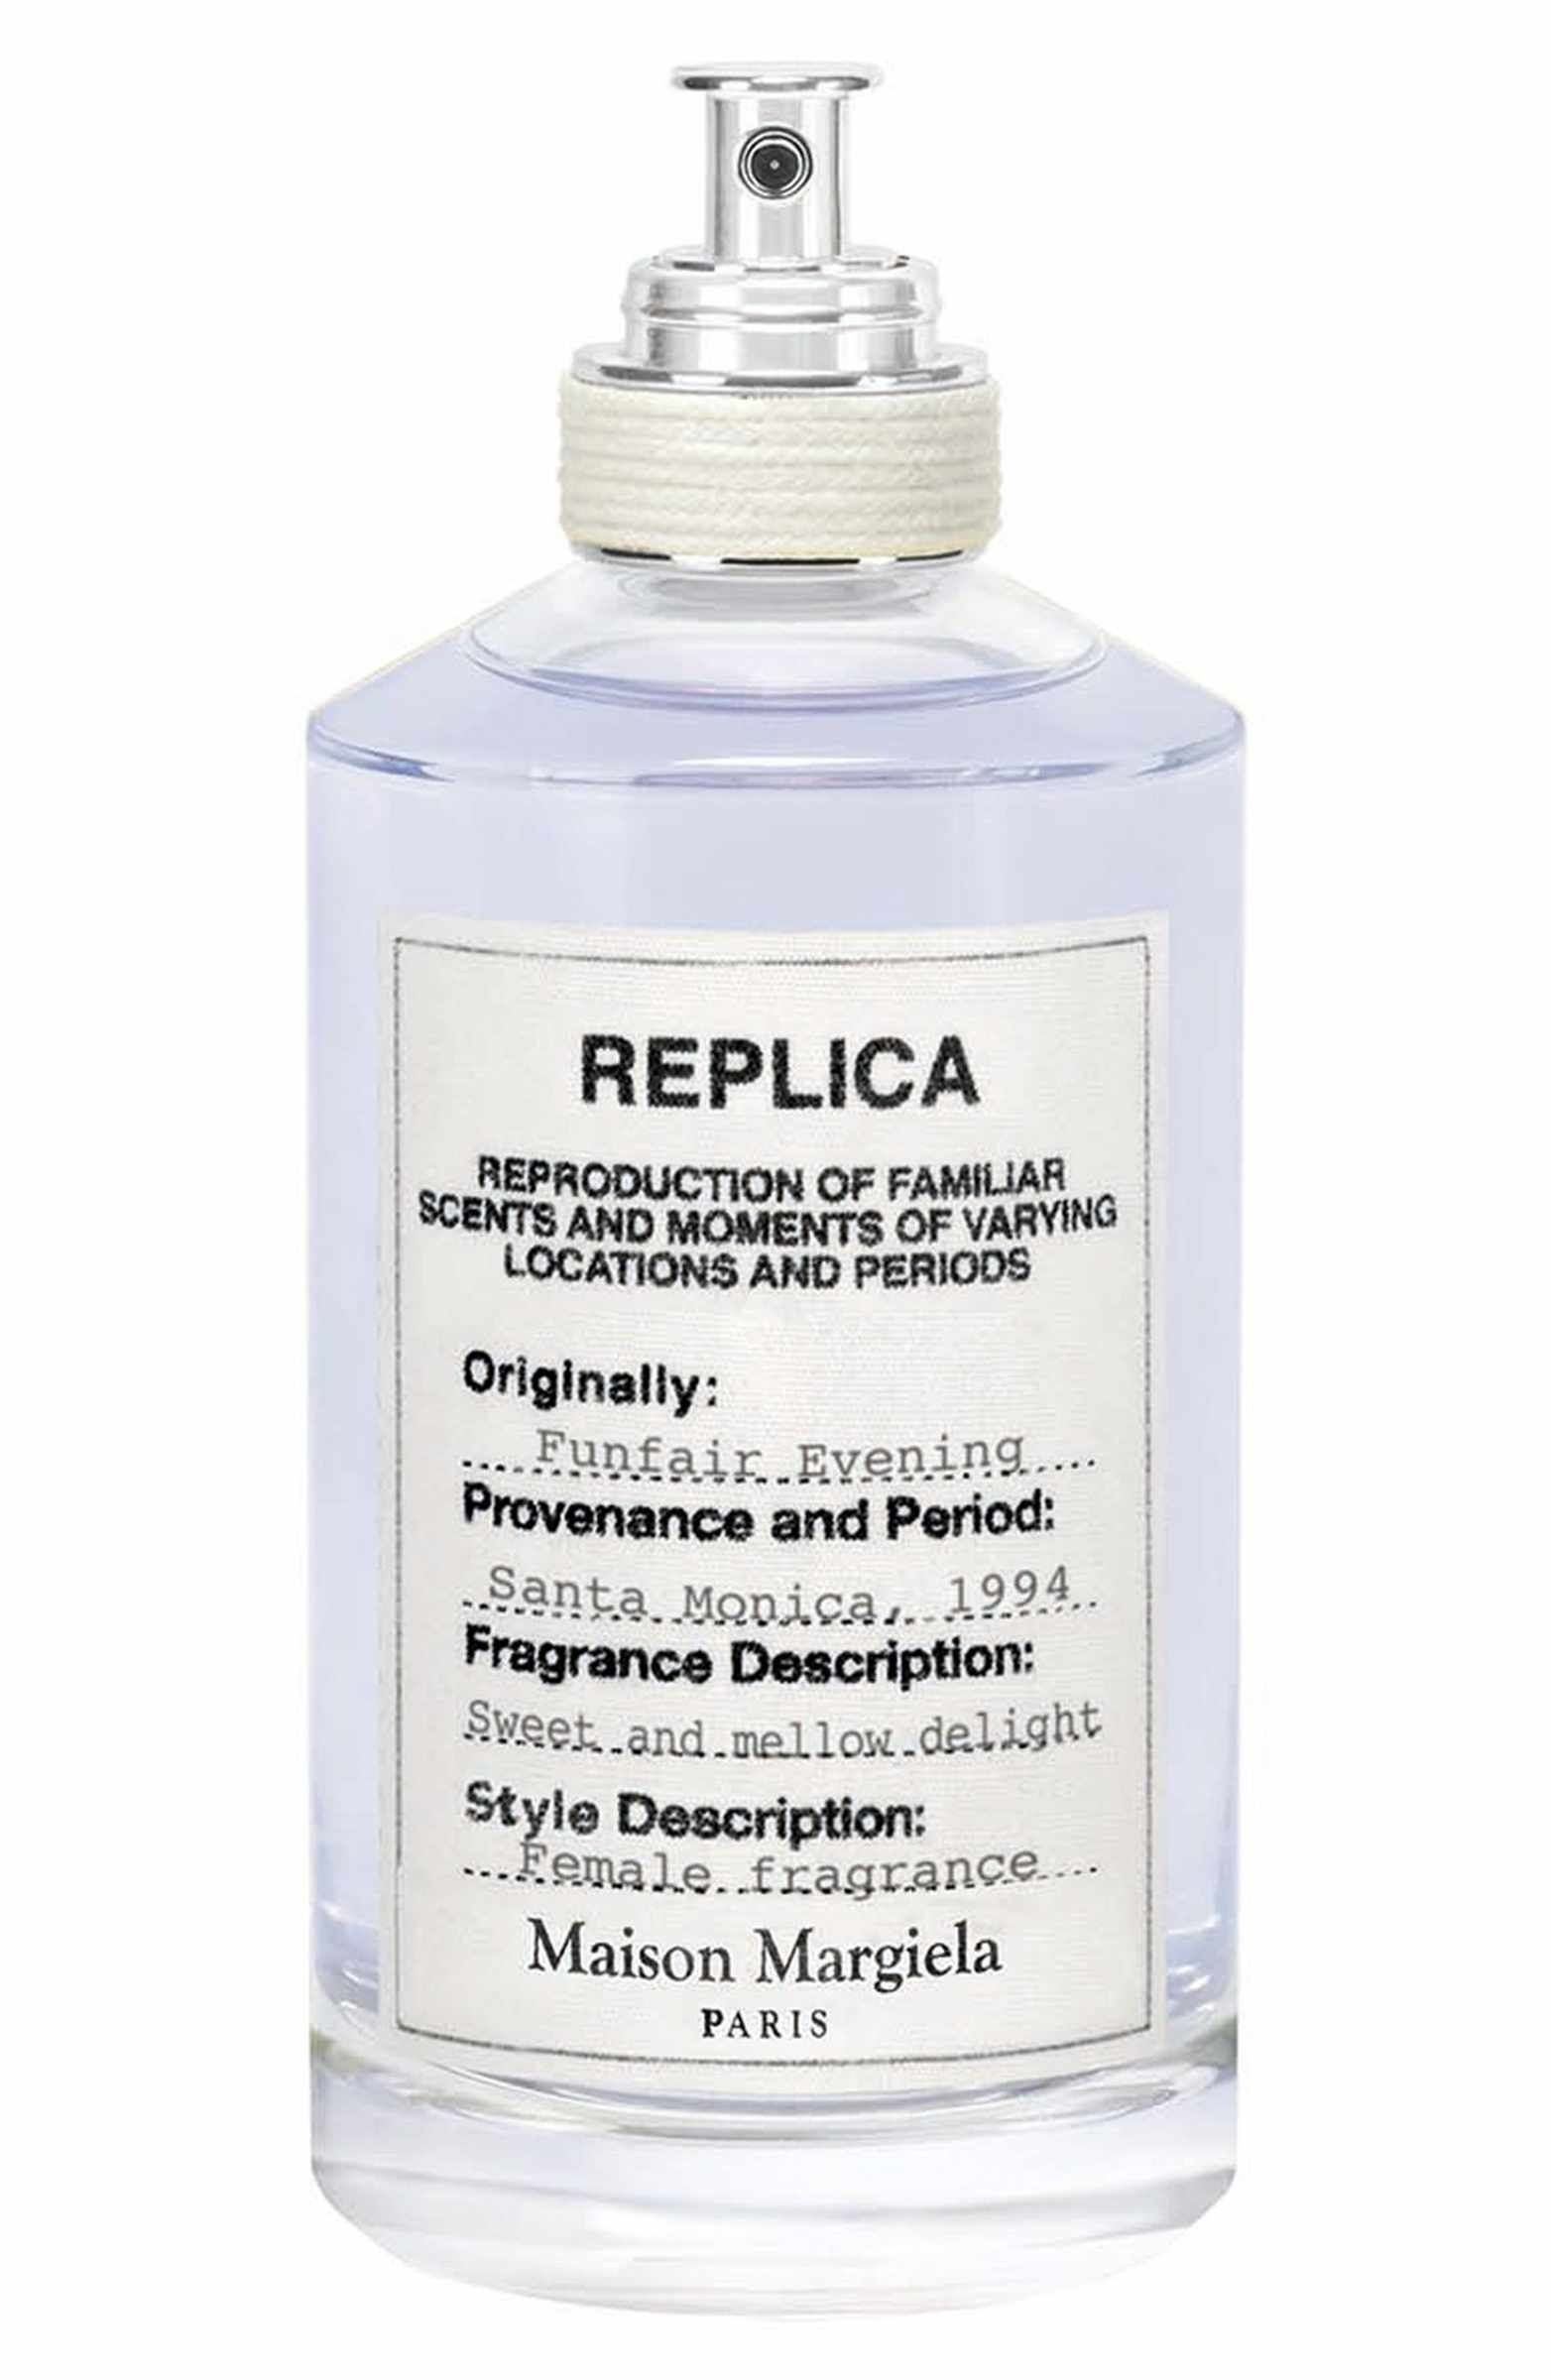 Maison Margiela Replica Funfair Evening Fragrance Maison Martin